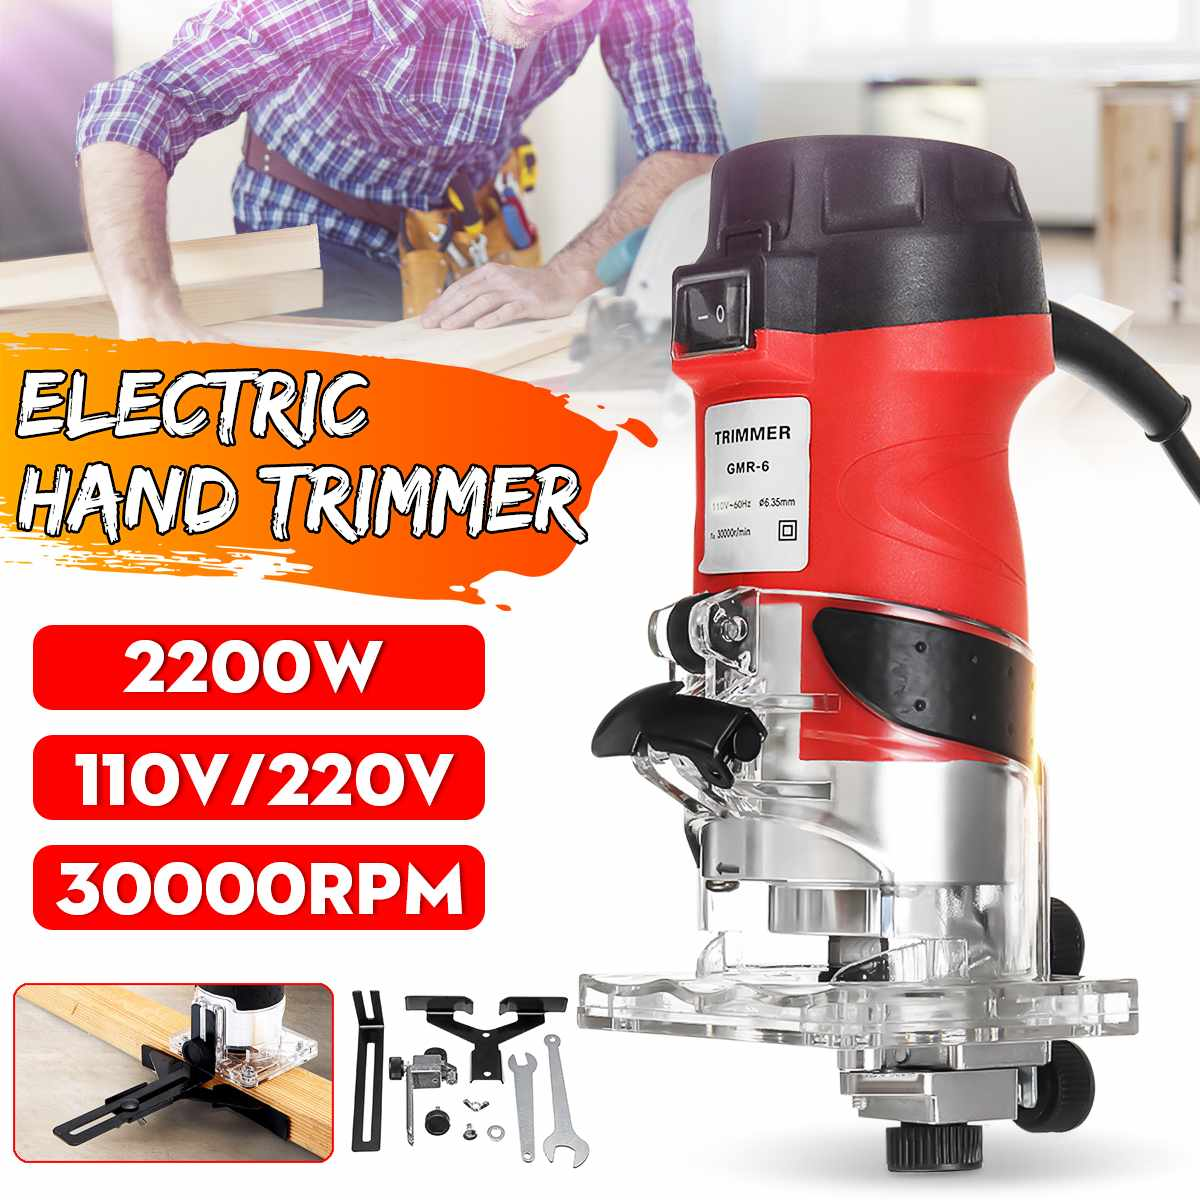 30000rpm 2200W  Woodworking Electric Trimmer Waterproof Wood Milling Engraving Slotting Trimming Machine Set With Accessories|Electric Trimmers| |  - title=